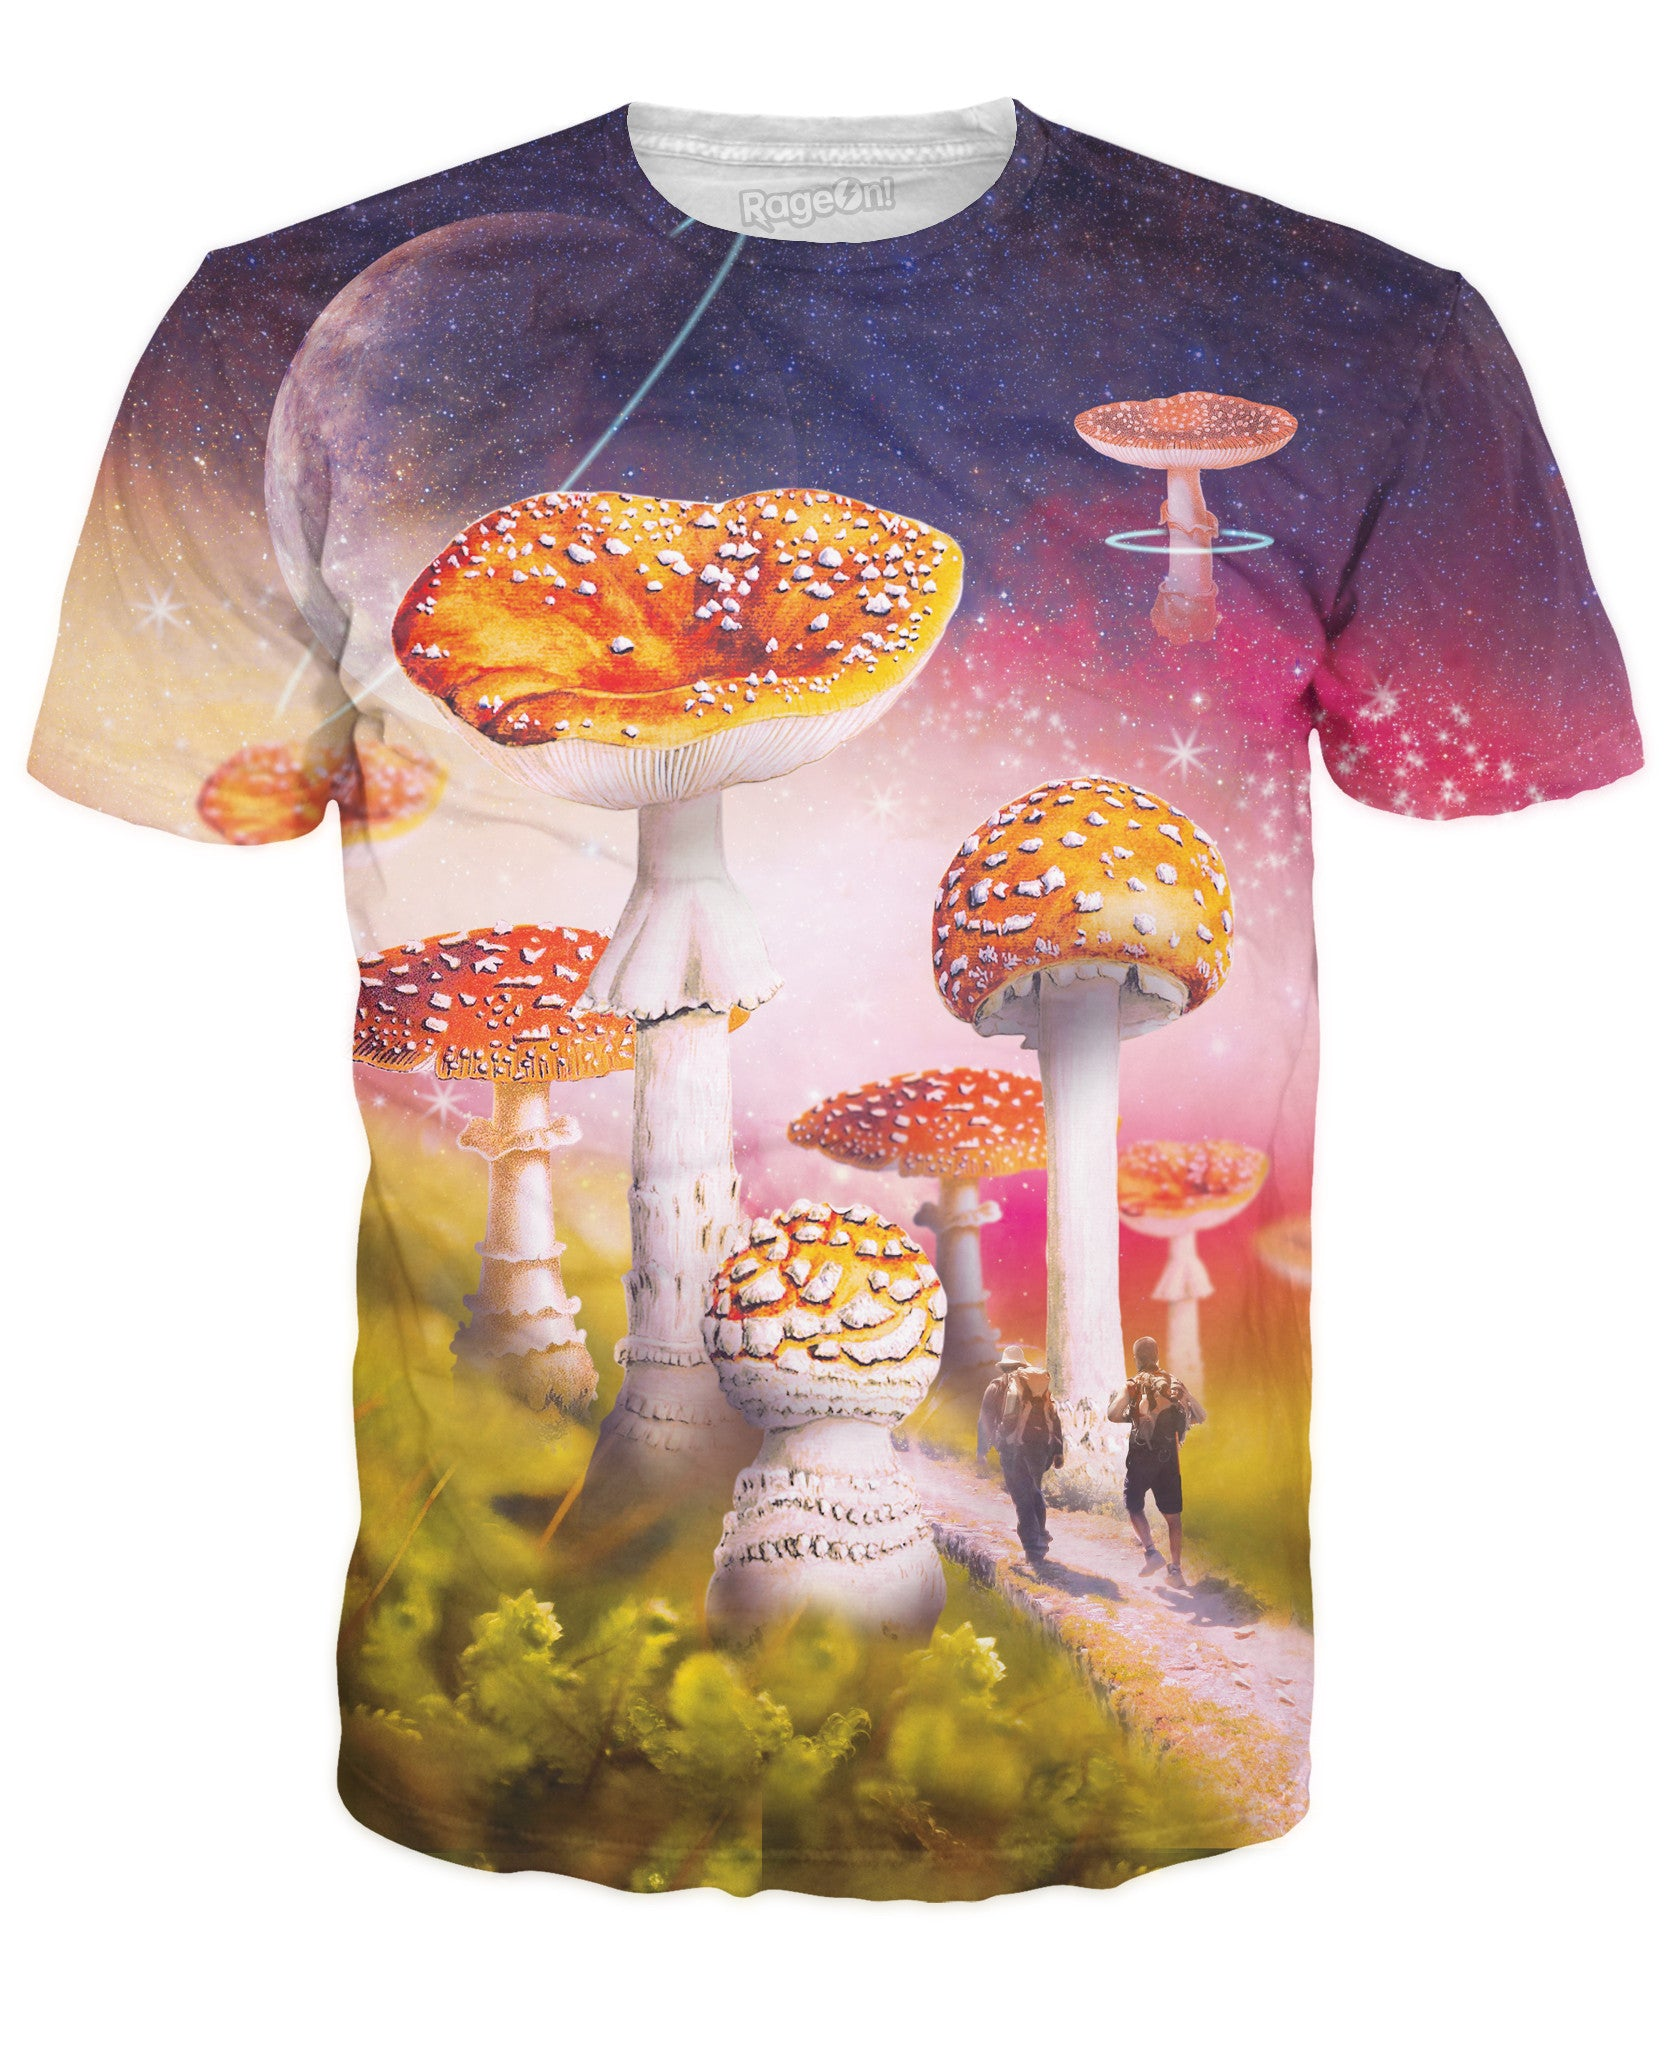 Journey to Shroomland T-Shirt